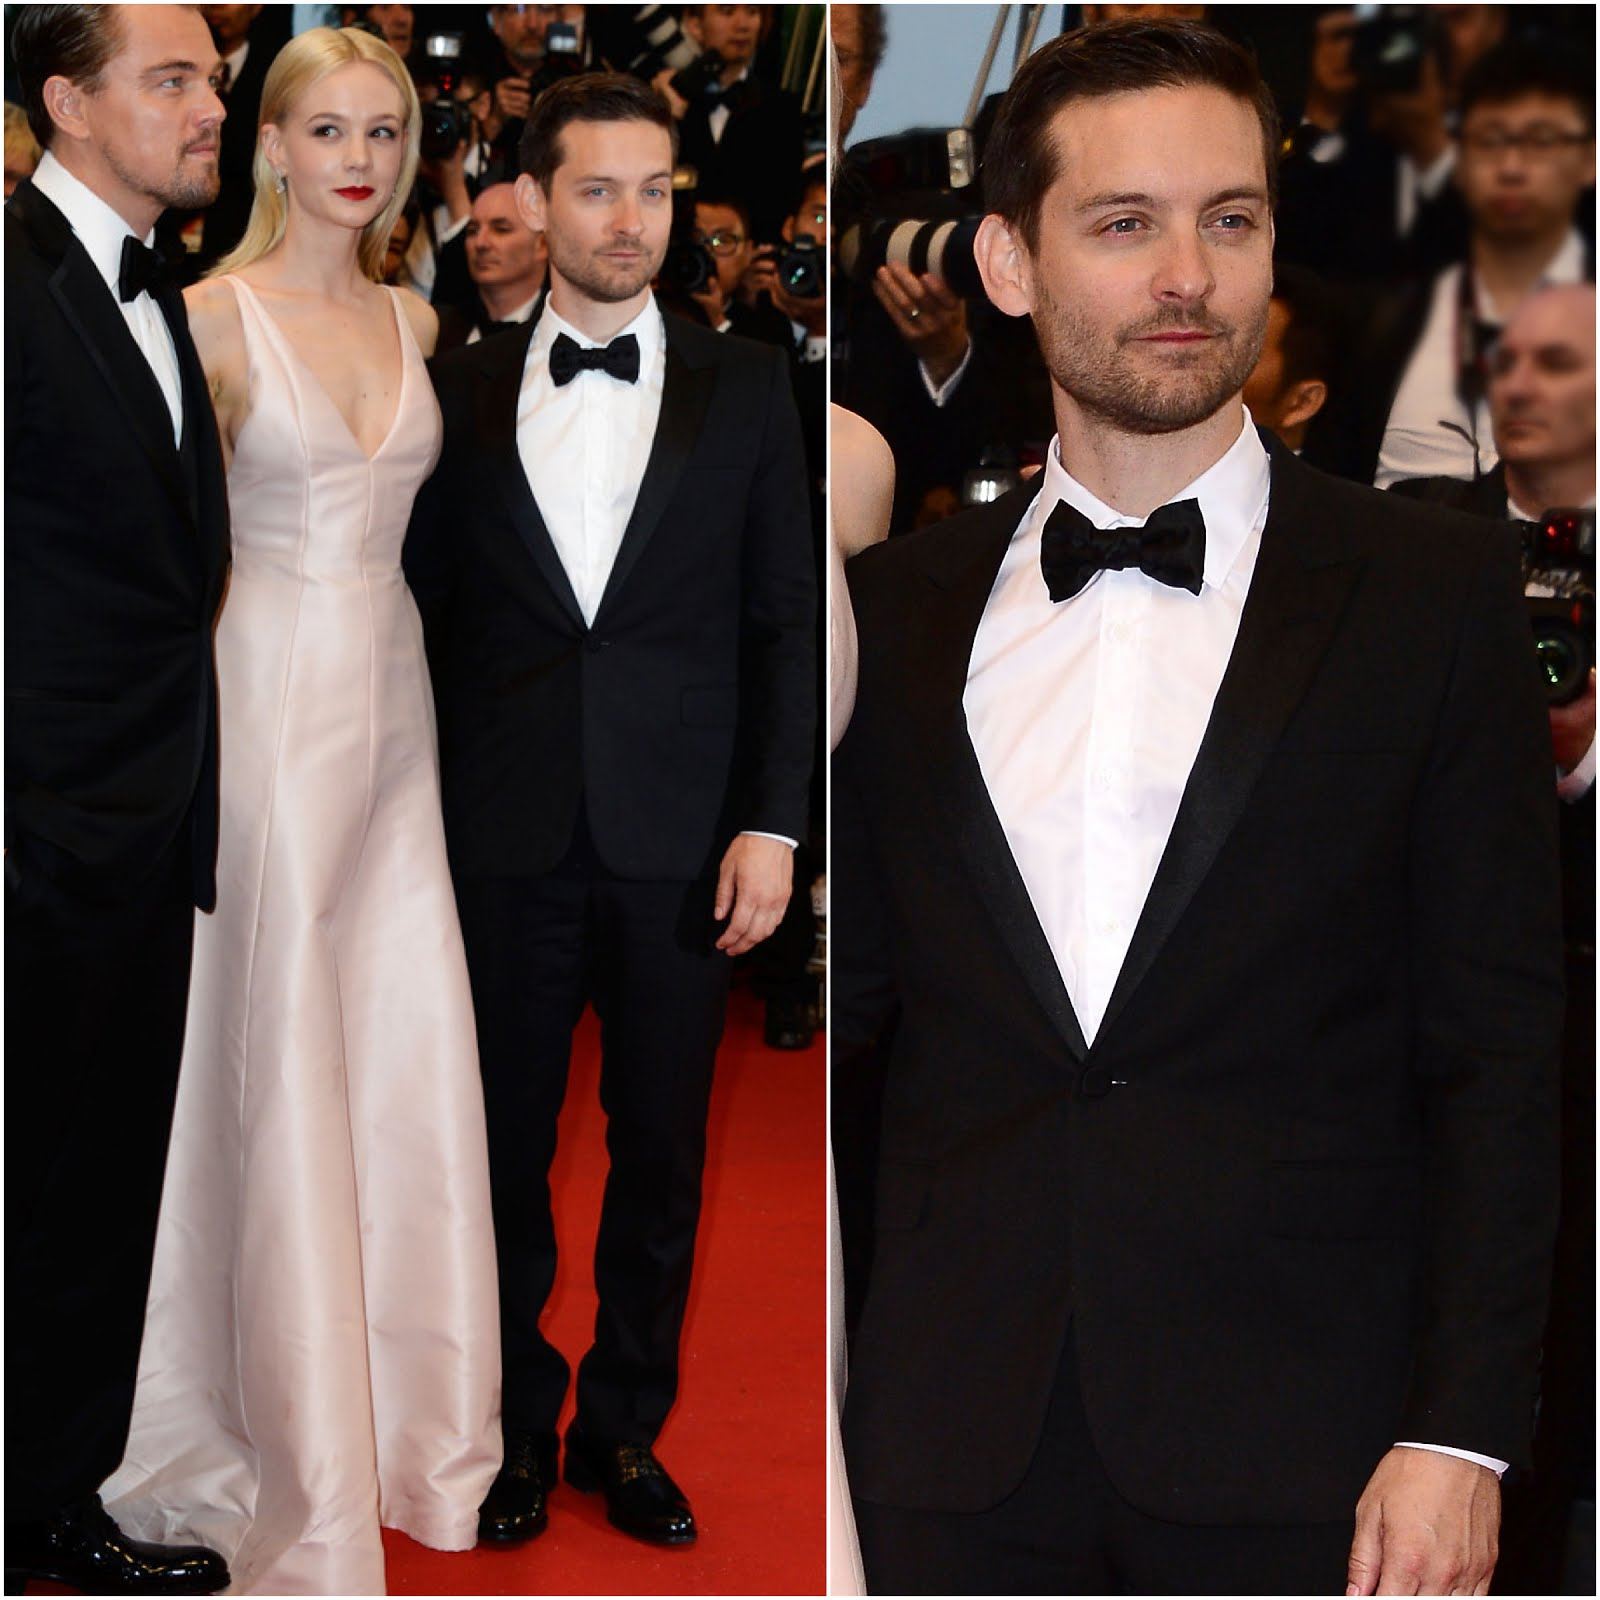 00O00 Menswear Blog Tobey Maguire in YSL Saint Laurent by Hedi Slimane - 'The Great Gatsby' Premiere, 66th Annual Cannes Film Festival